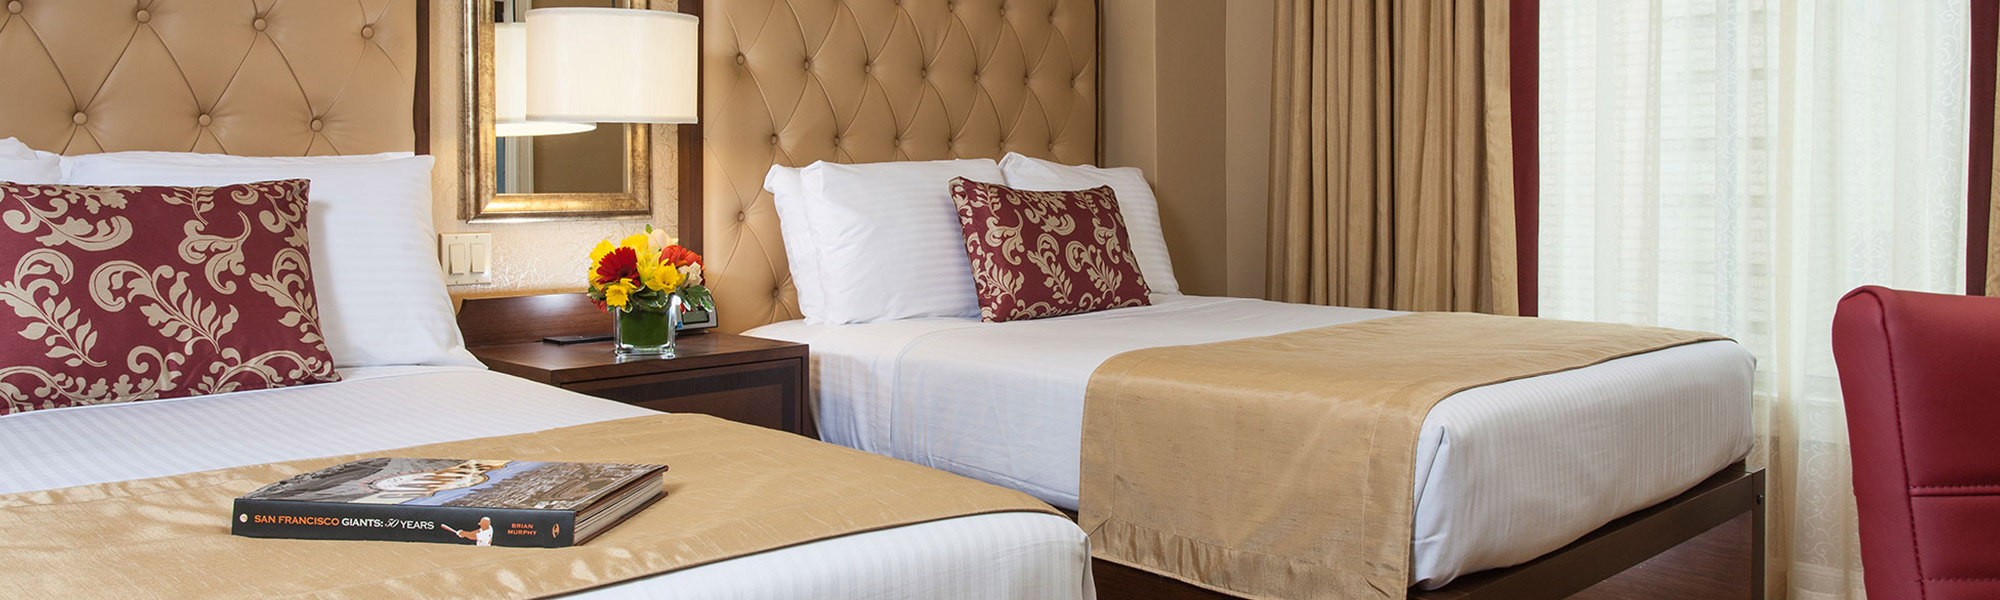 King George Hotel - A Greystone Hotel, San Francisco Reservations